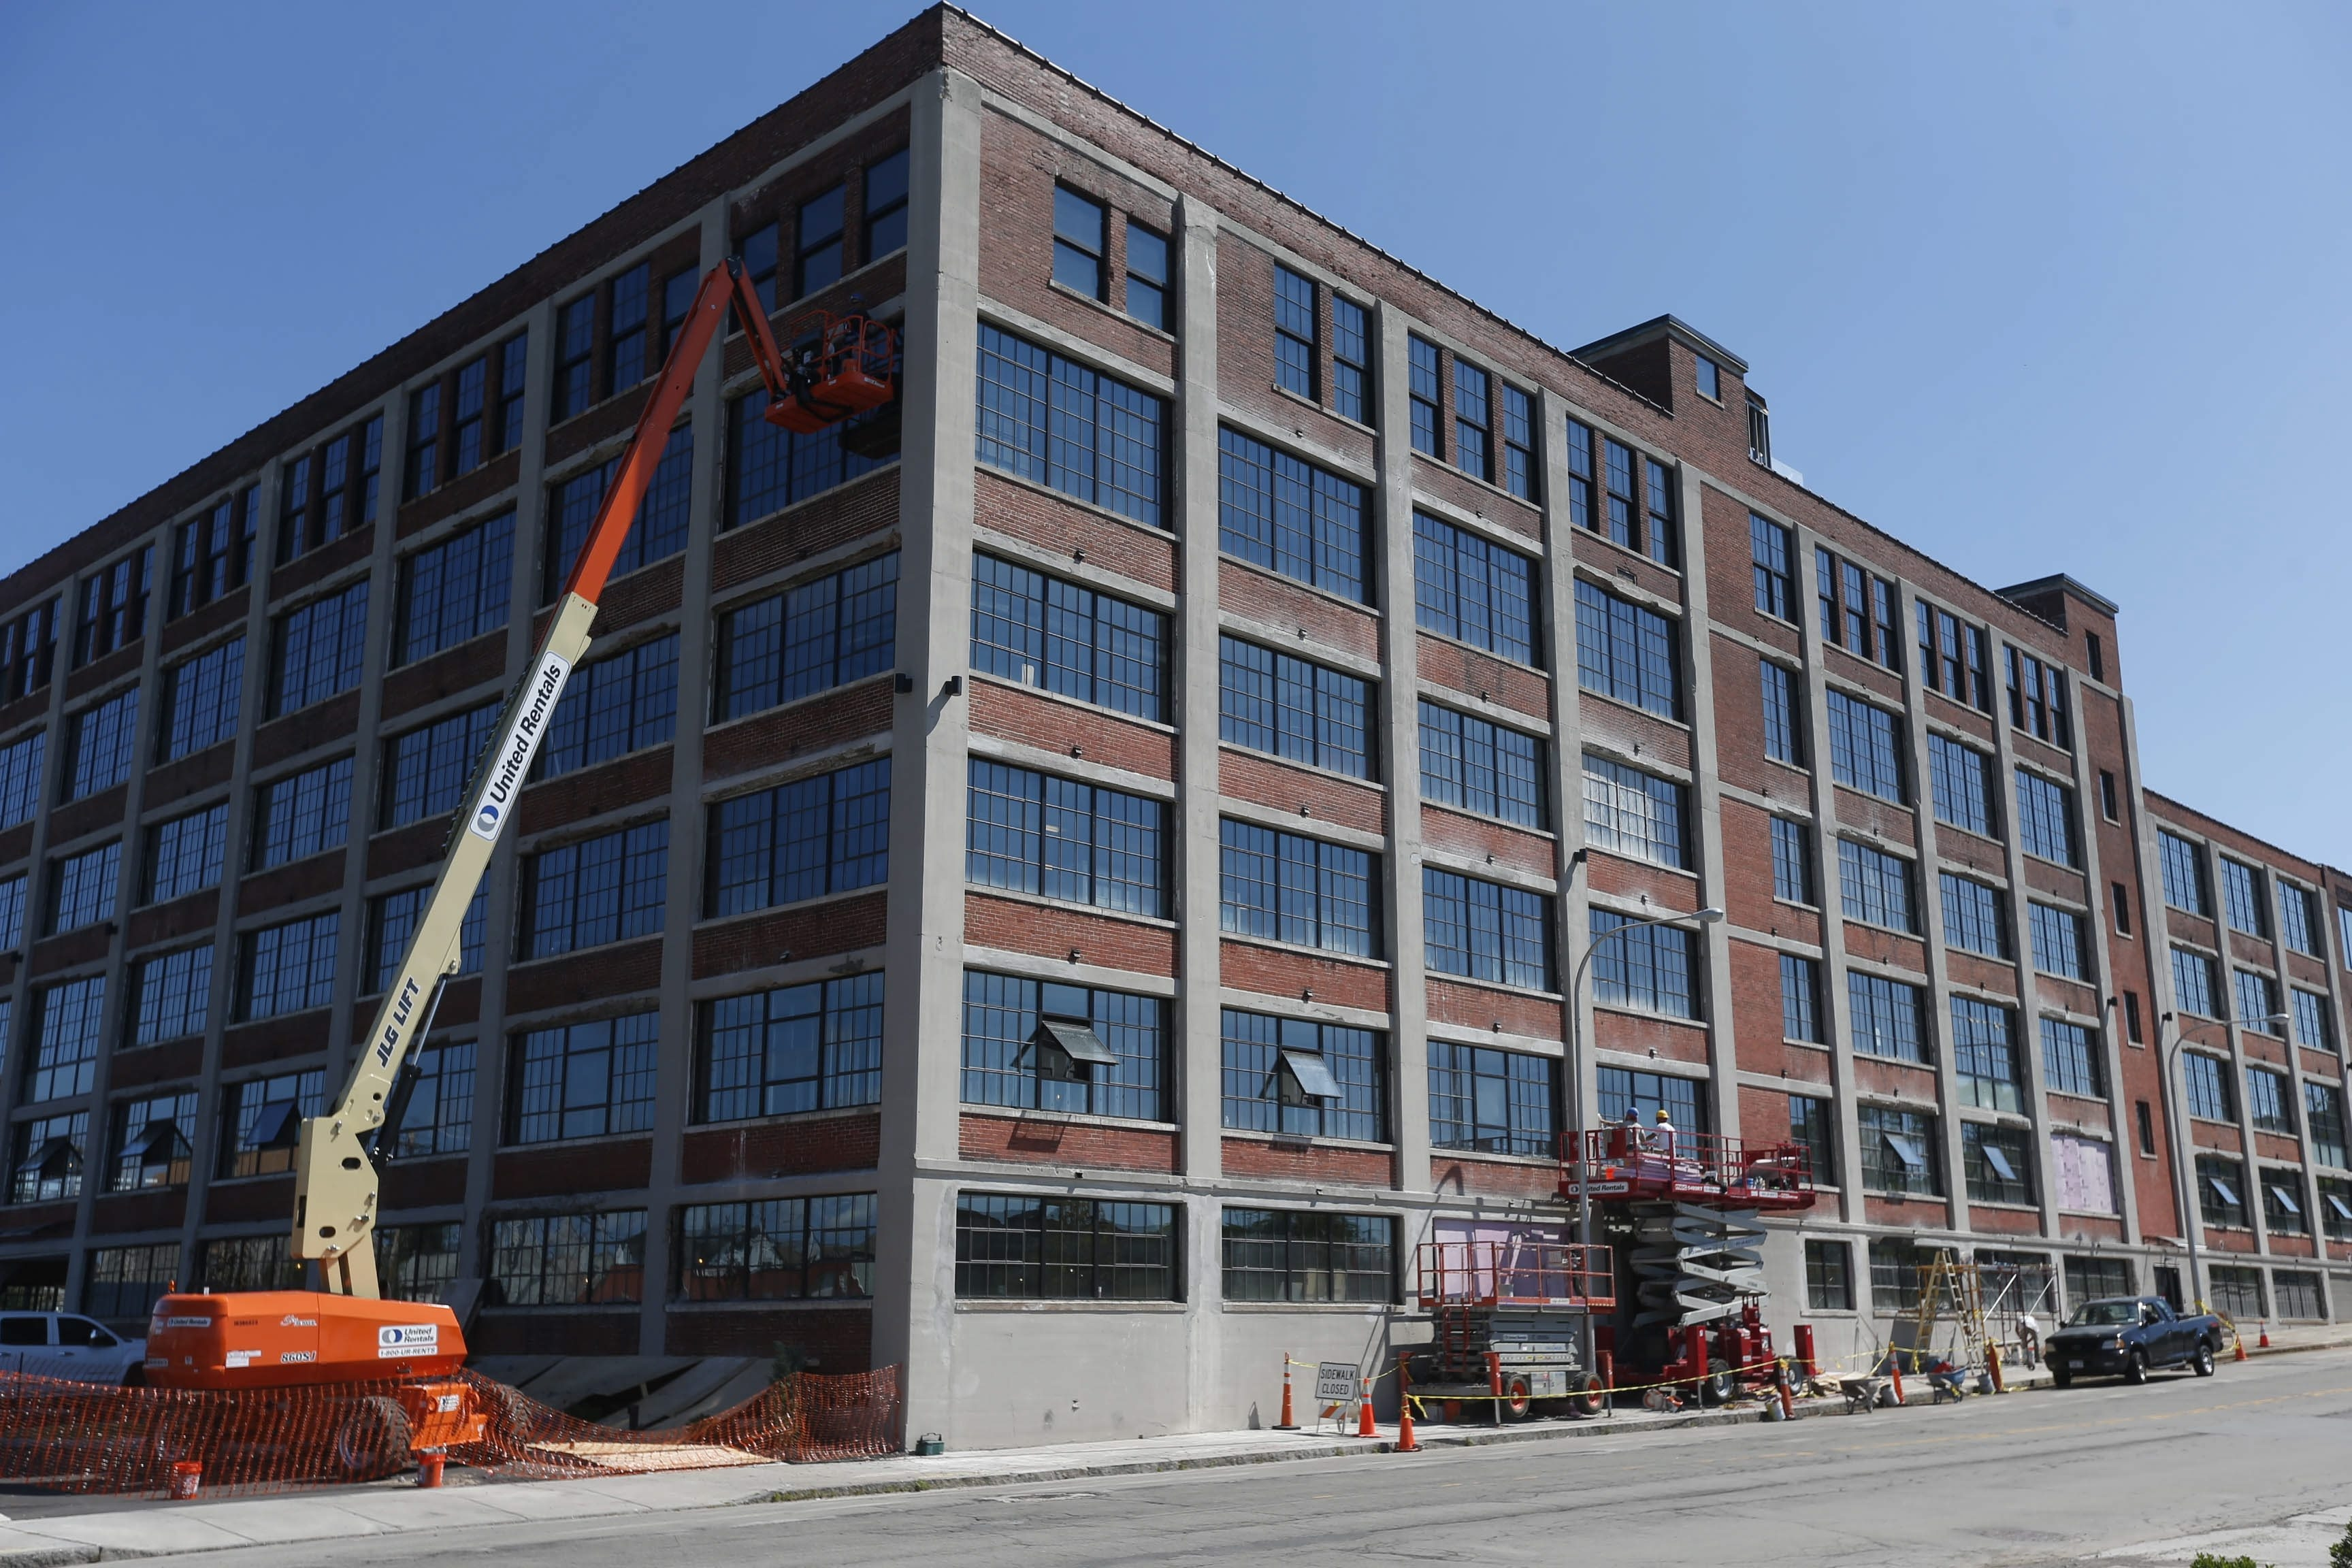 Residents of Buffalo's impoverished neighborhoods have been working for months on the redevelopment project at 500 Seneca St. as part of a new employment initiative through which they have gained experience while earning $15 an hour.